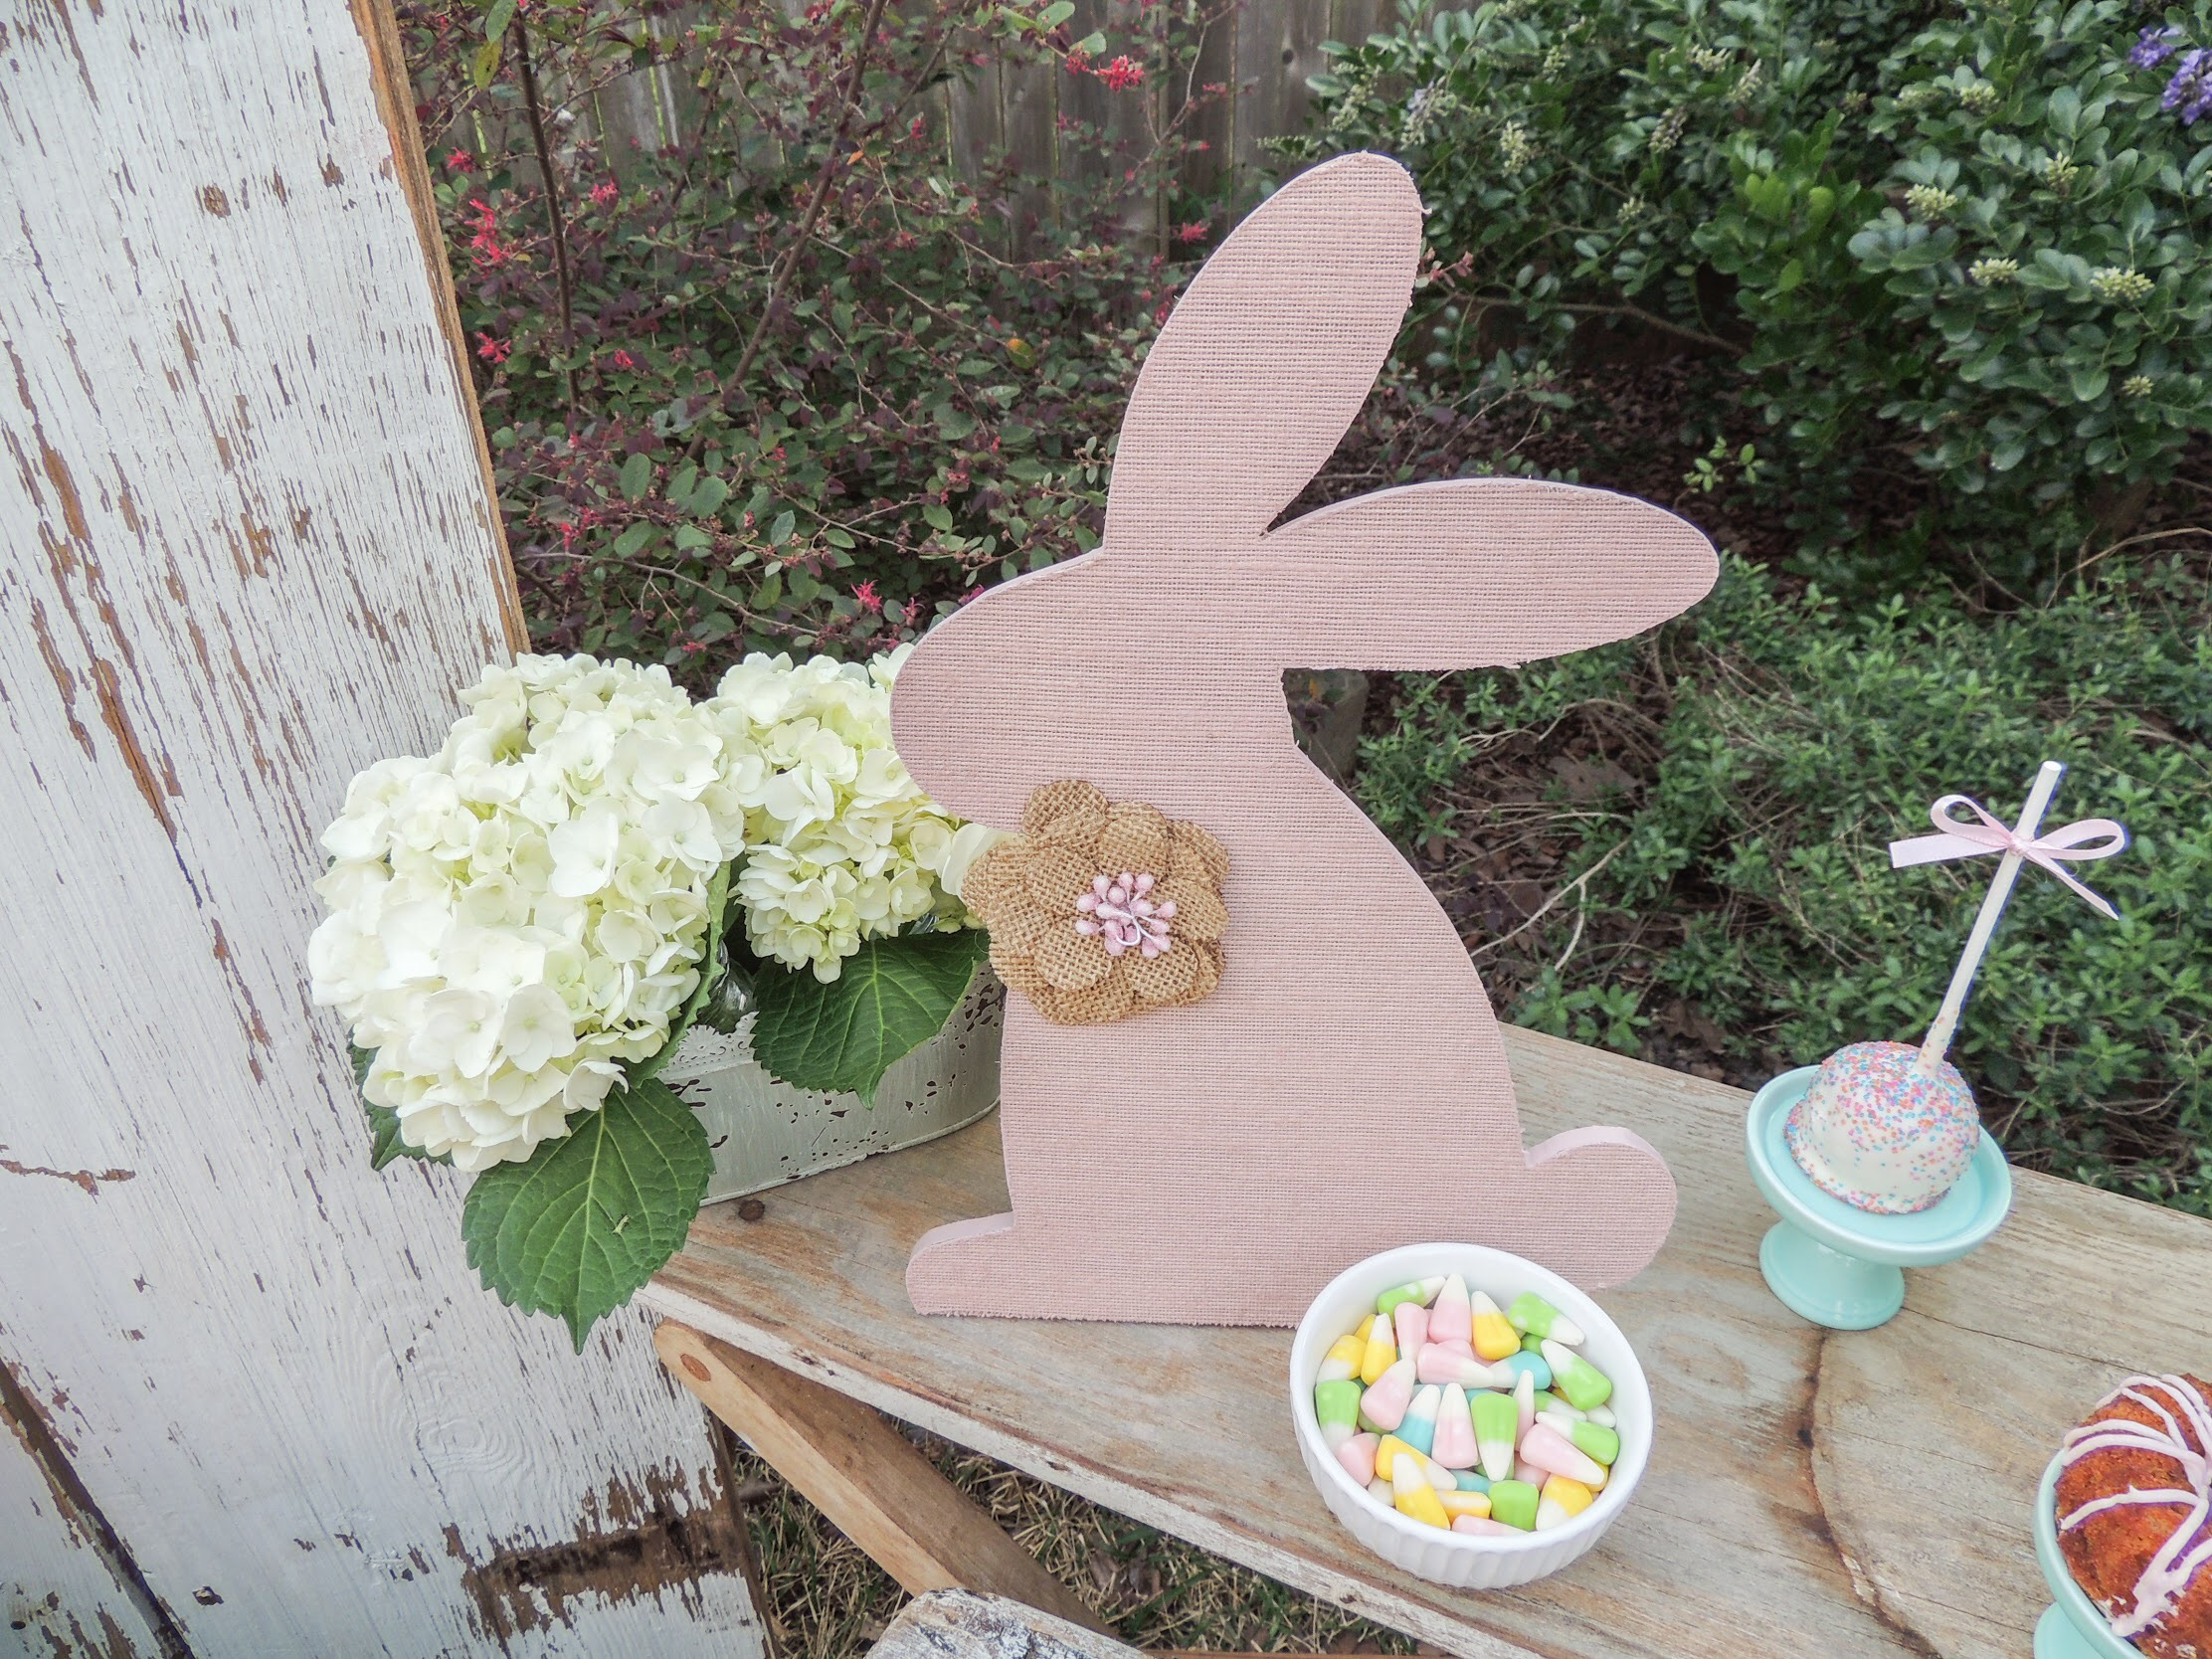 Adprab;e Easter party ideas